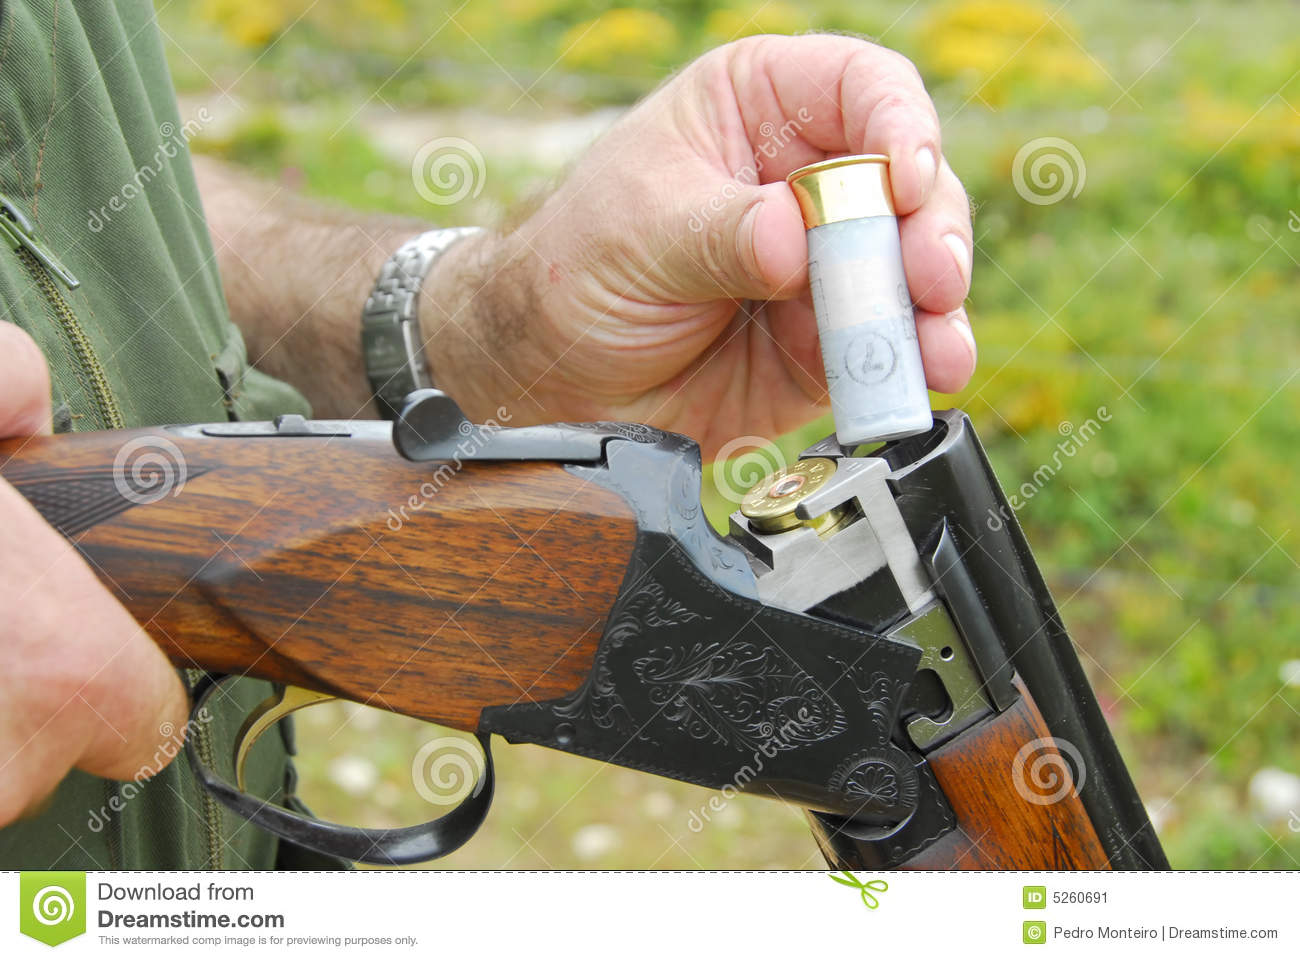 Chasseur chargeant son arme